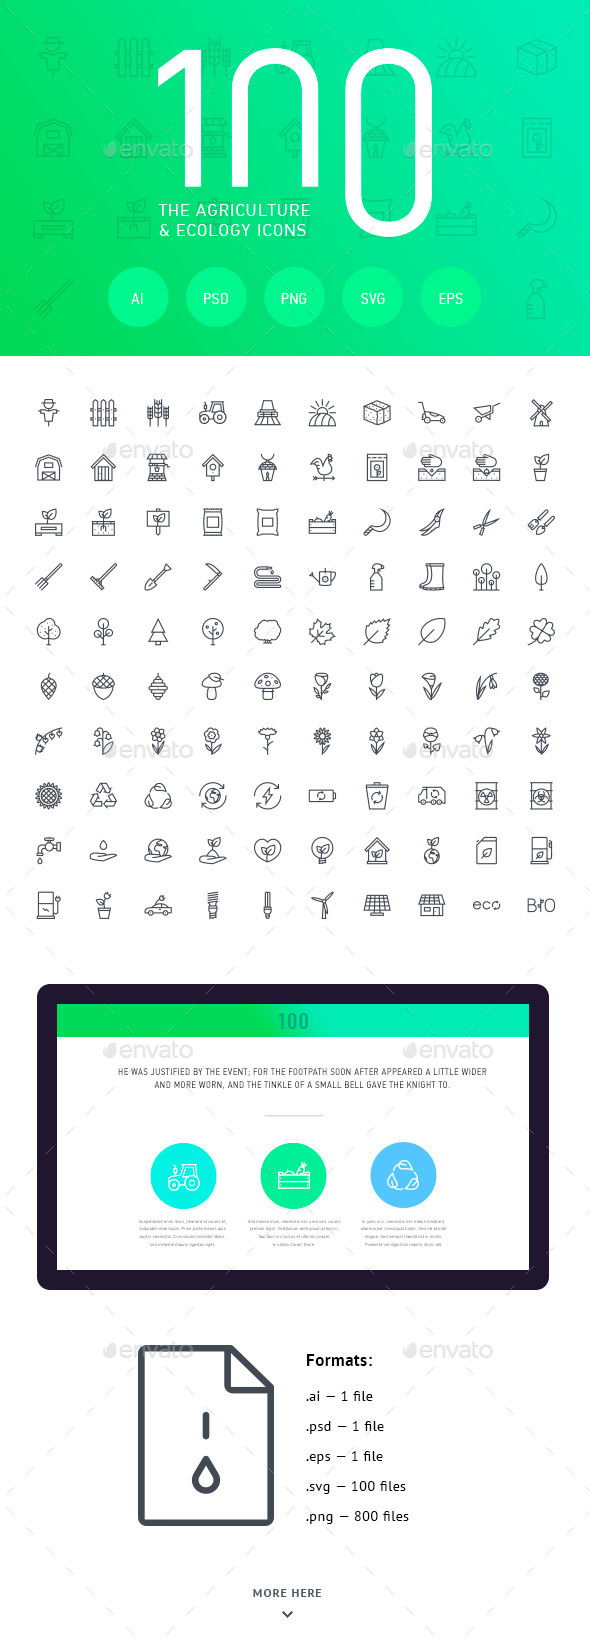 GraphicRiver The Agriculture & Ecology Icons 100 11563823